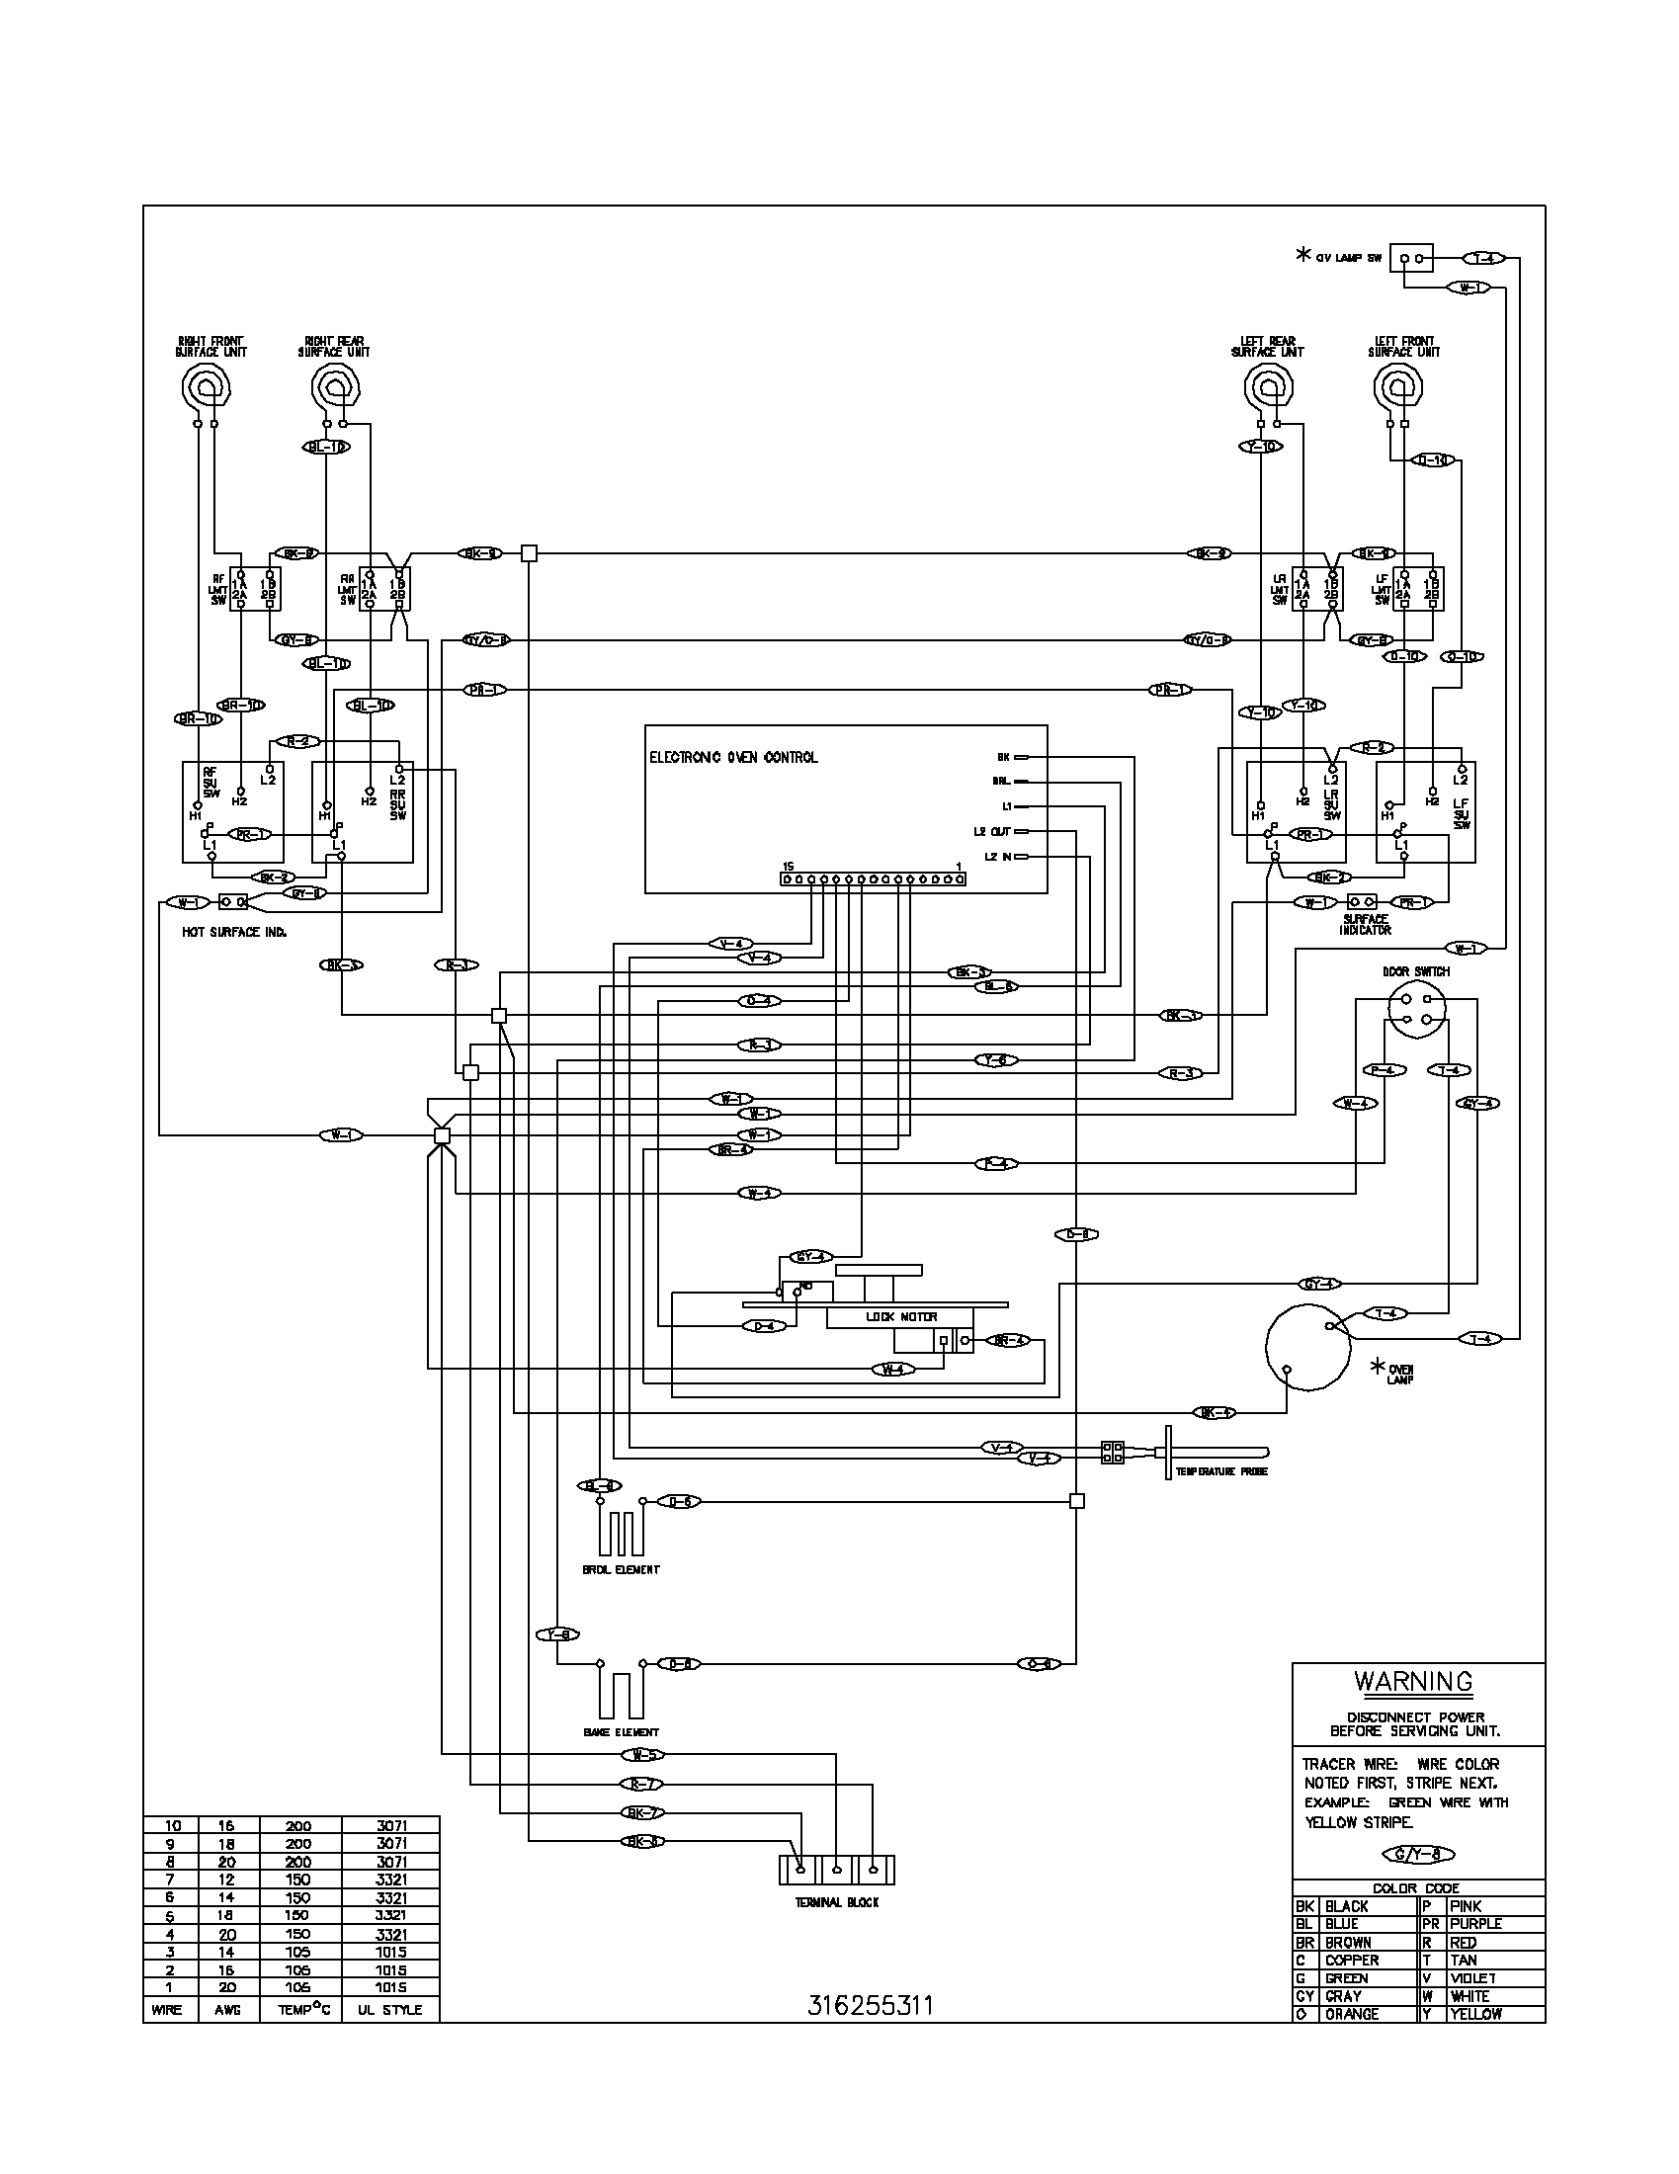 wiring diagram electric oven wiring image wiring electric range wiring diagram electric wiring diagrams online on wiring diagram electric oven